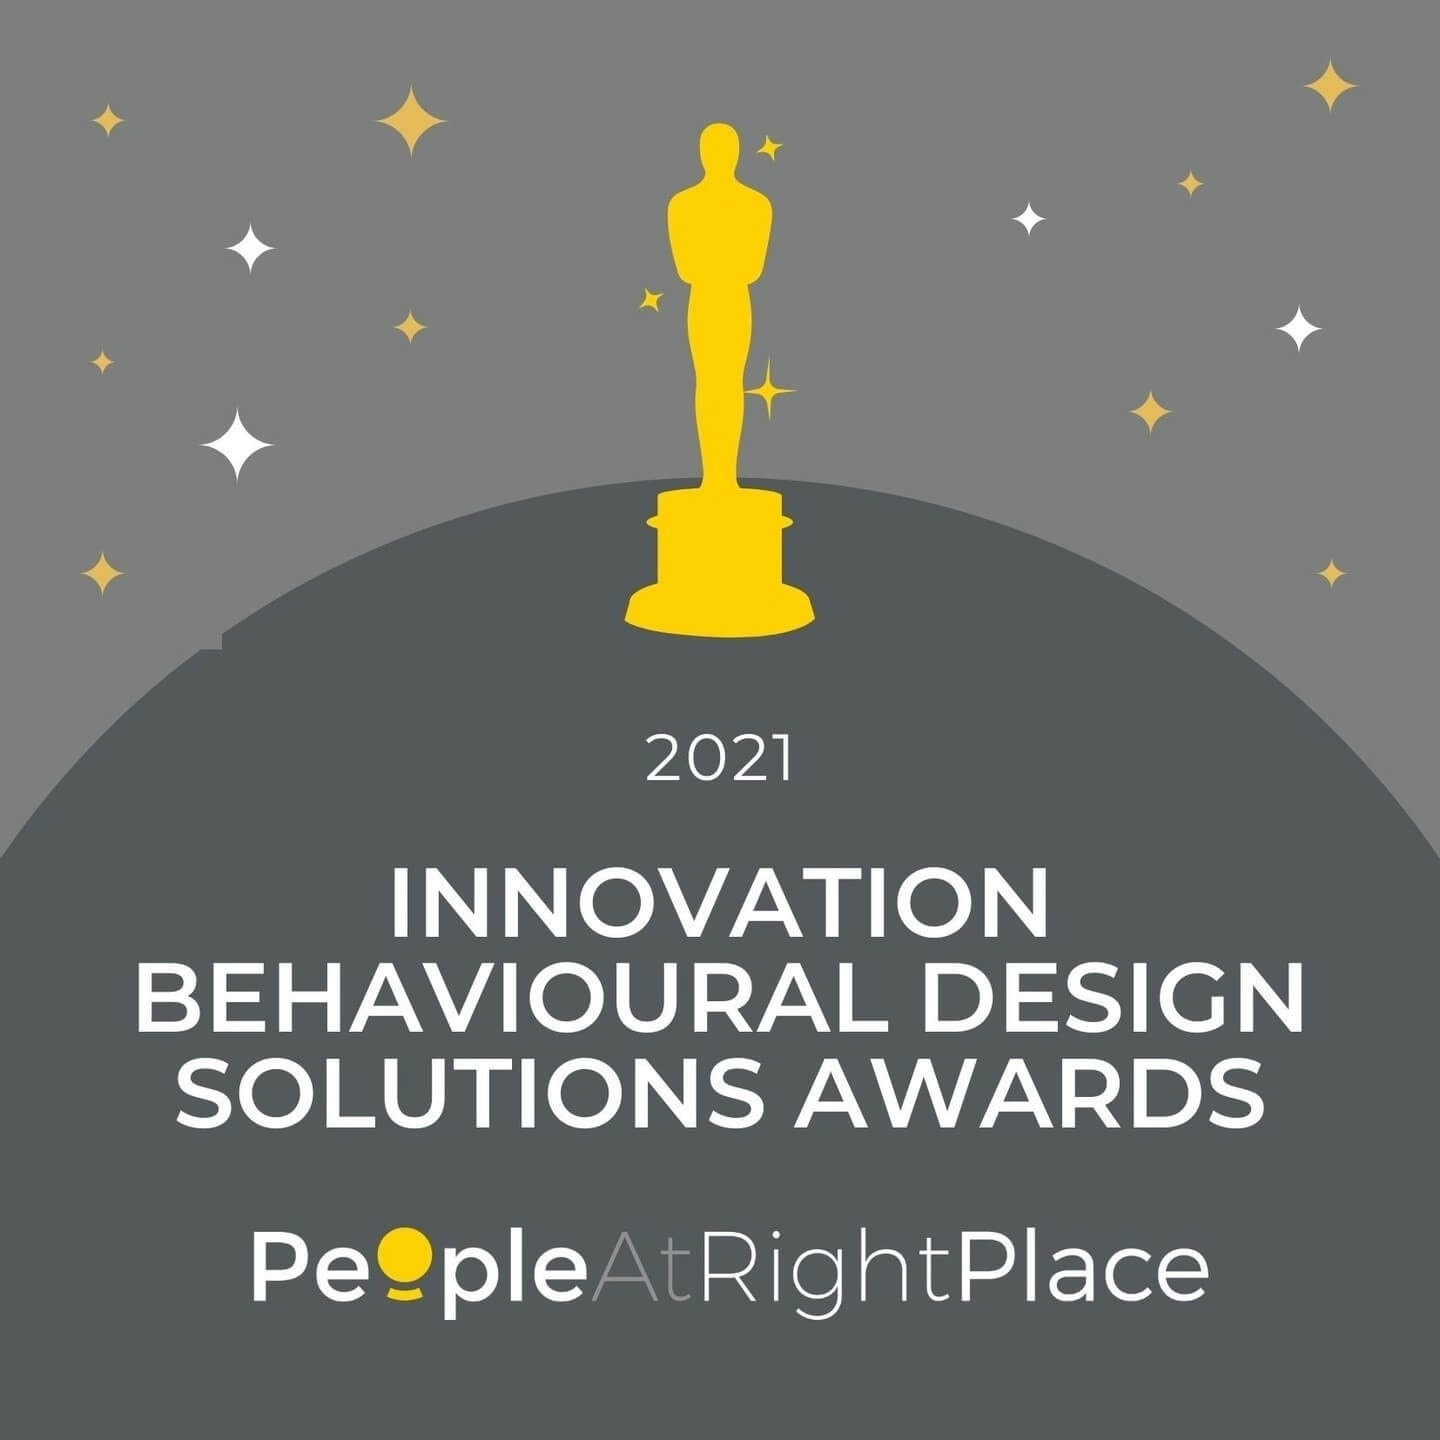 2021 Award for Innovation in Behavioral Design Solutions - PeopleAtRightPlace